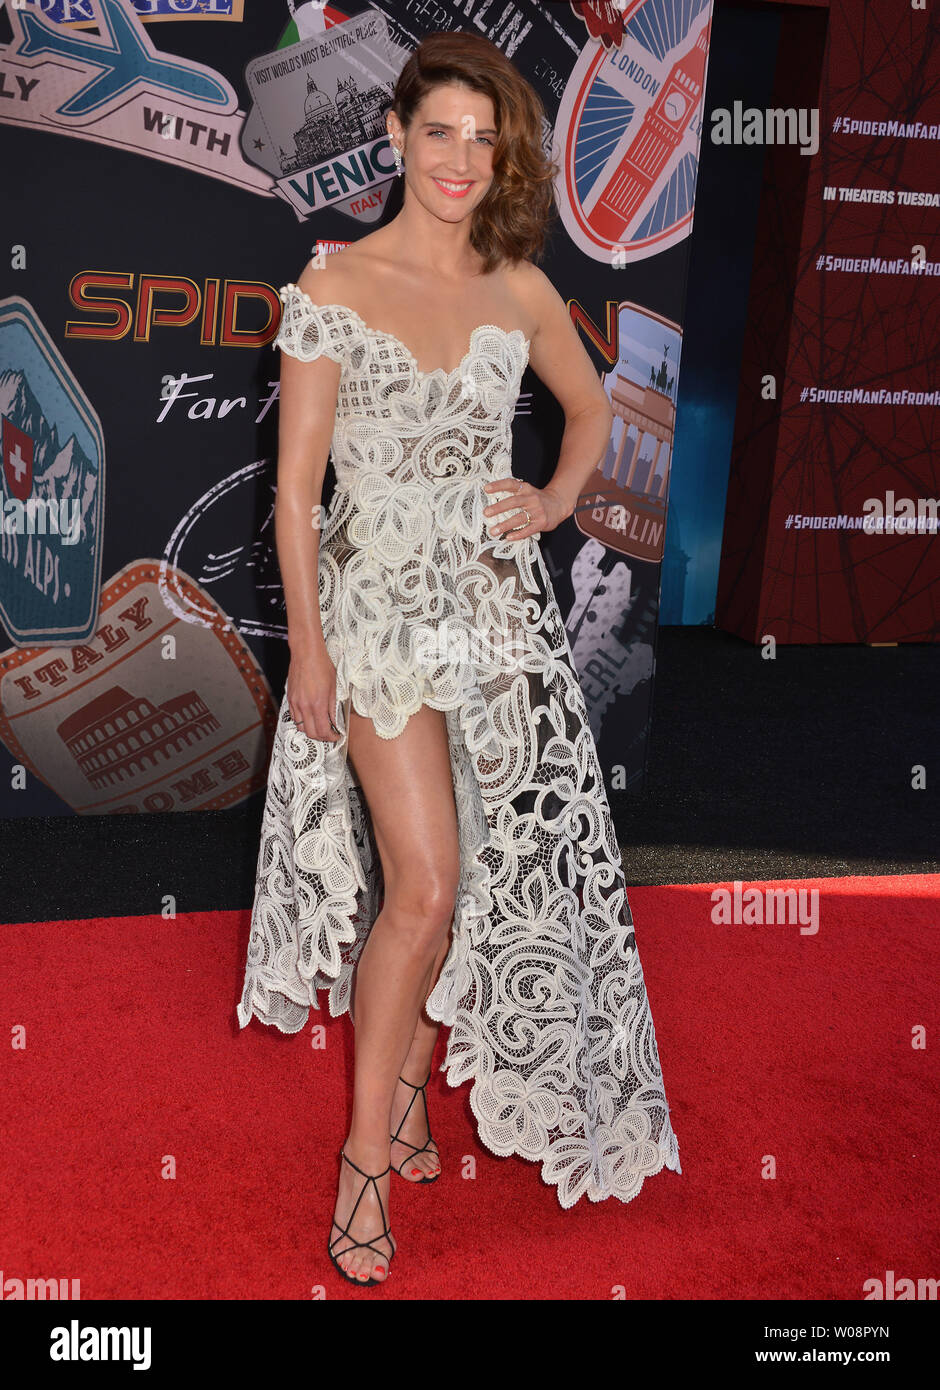 """Los Angeles, USA. 26th June, 2019. Cobie Smulders arrives for the premiere of Sony Pictures' """"Spider-Man Far From Home"""" held at TCL Chinese Theatre on June 26, 2019 in Hollywood, California Credit: Tsuni/USA/Alamy Live News Stock Photo"""